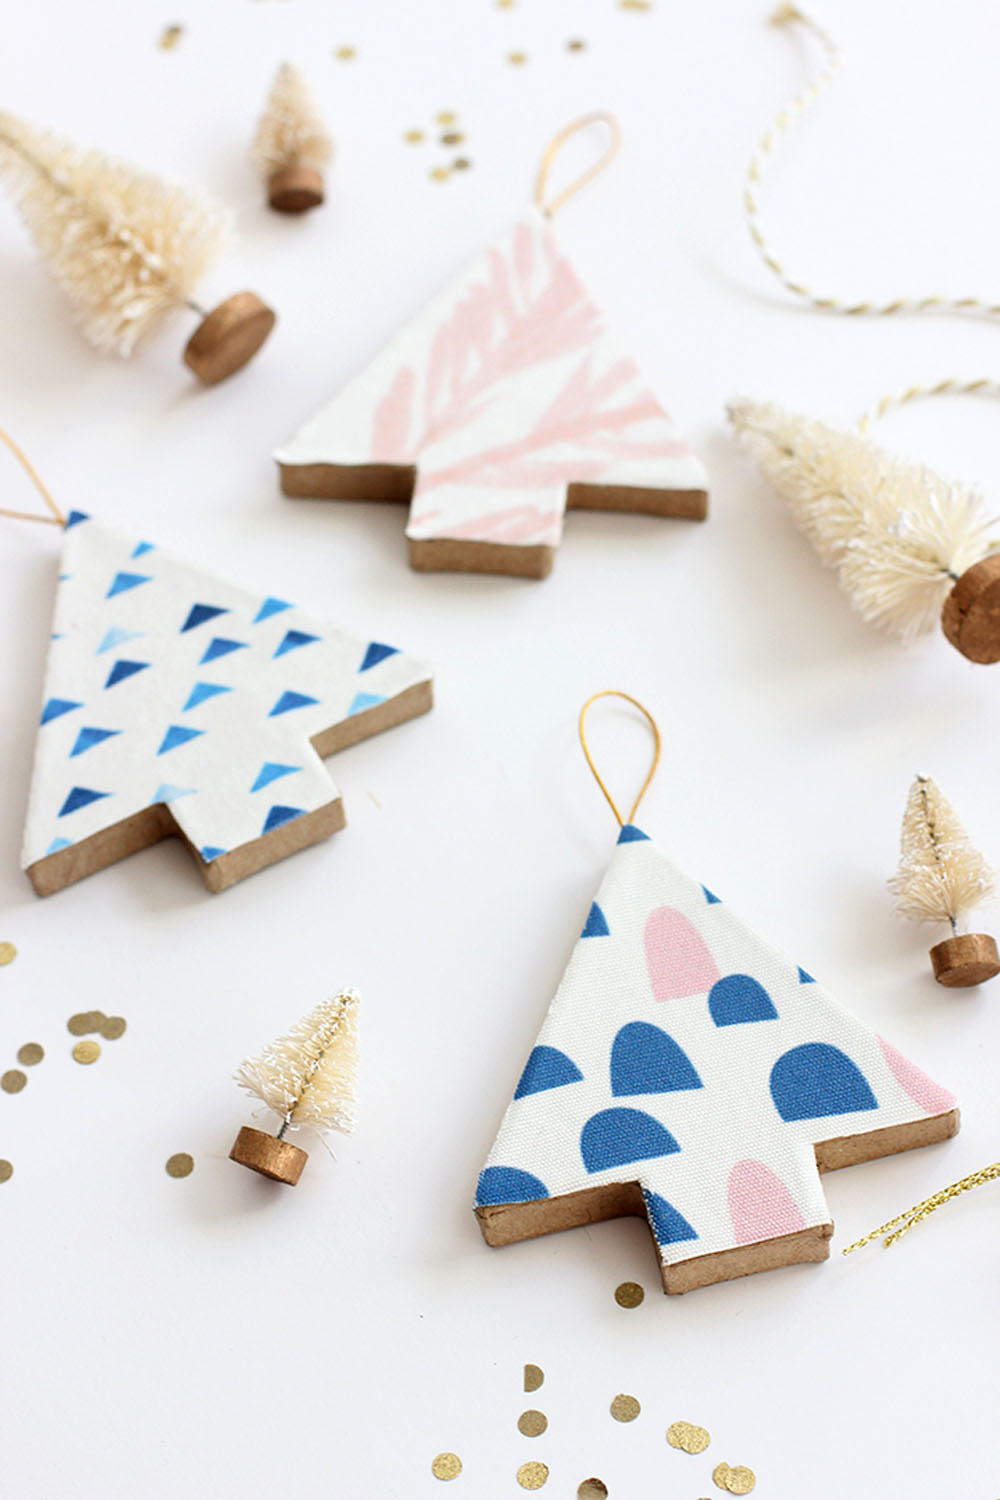 diy-fabric-covered-tree-ornament-4